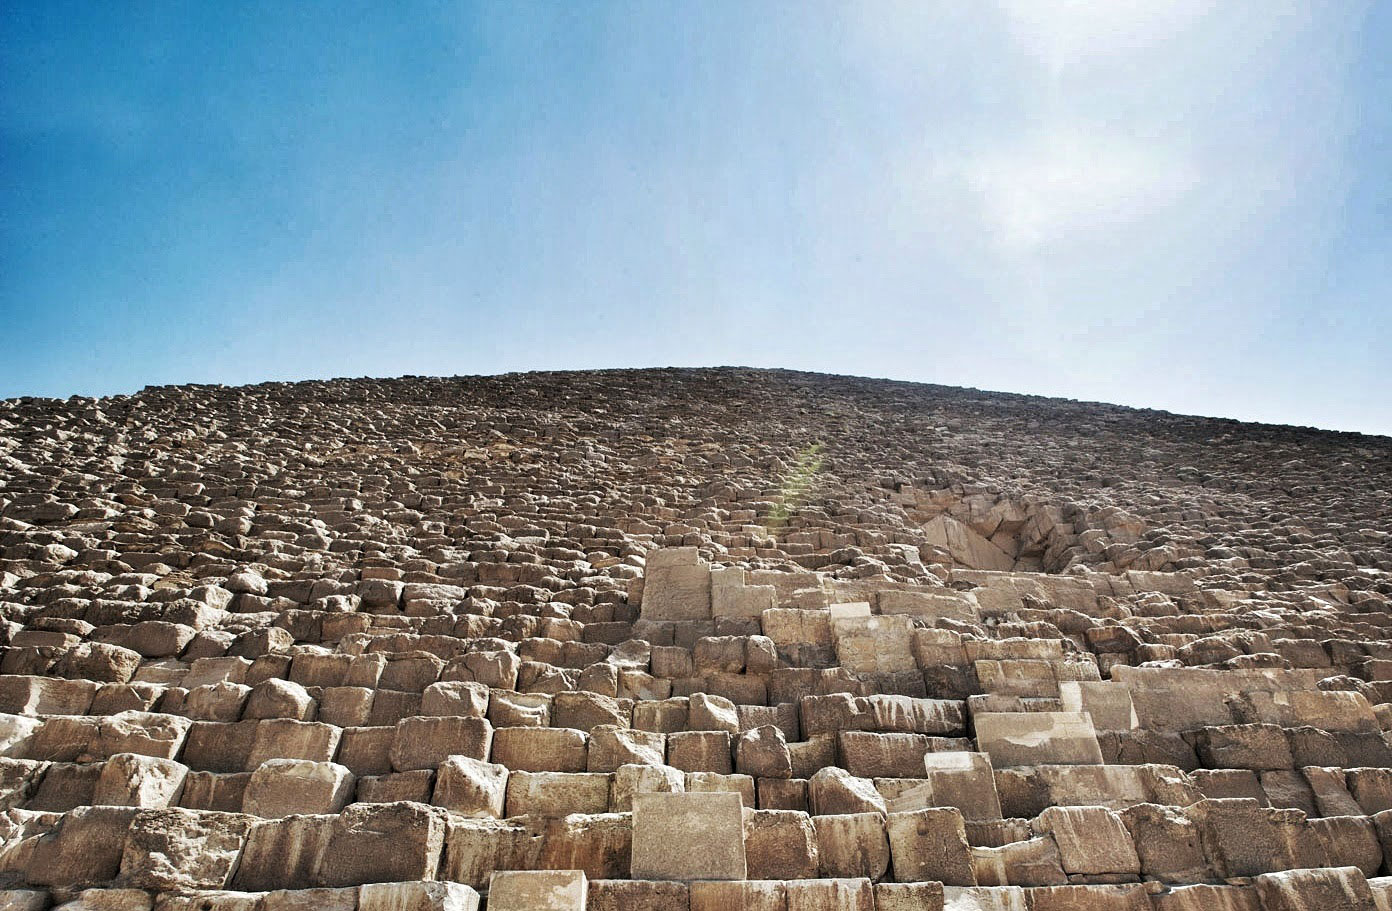 Intricate stonework of Egypt's Great Pyramid of Giza (low angle)